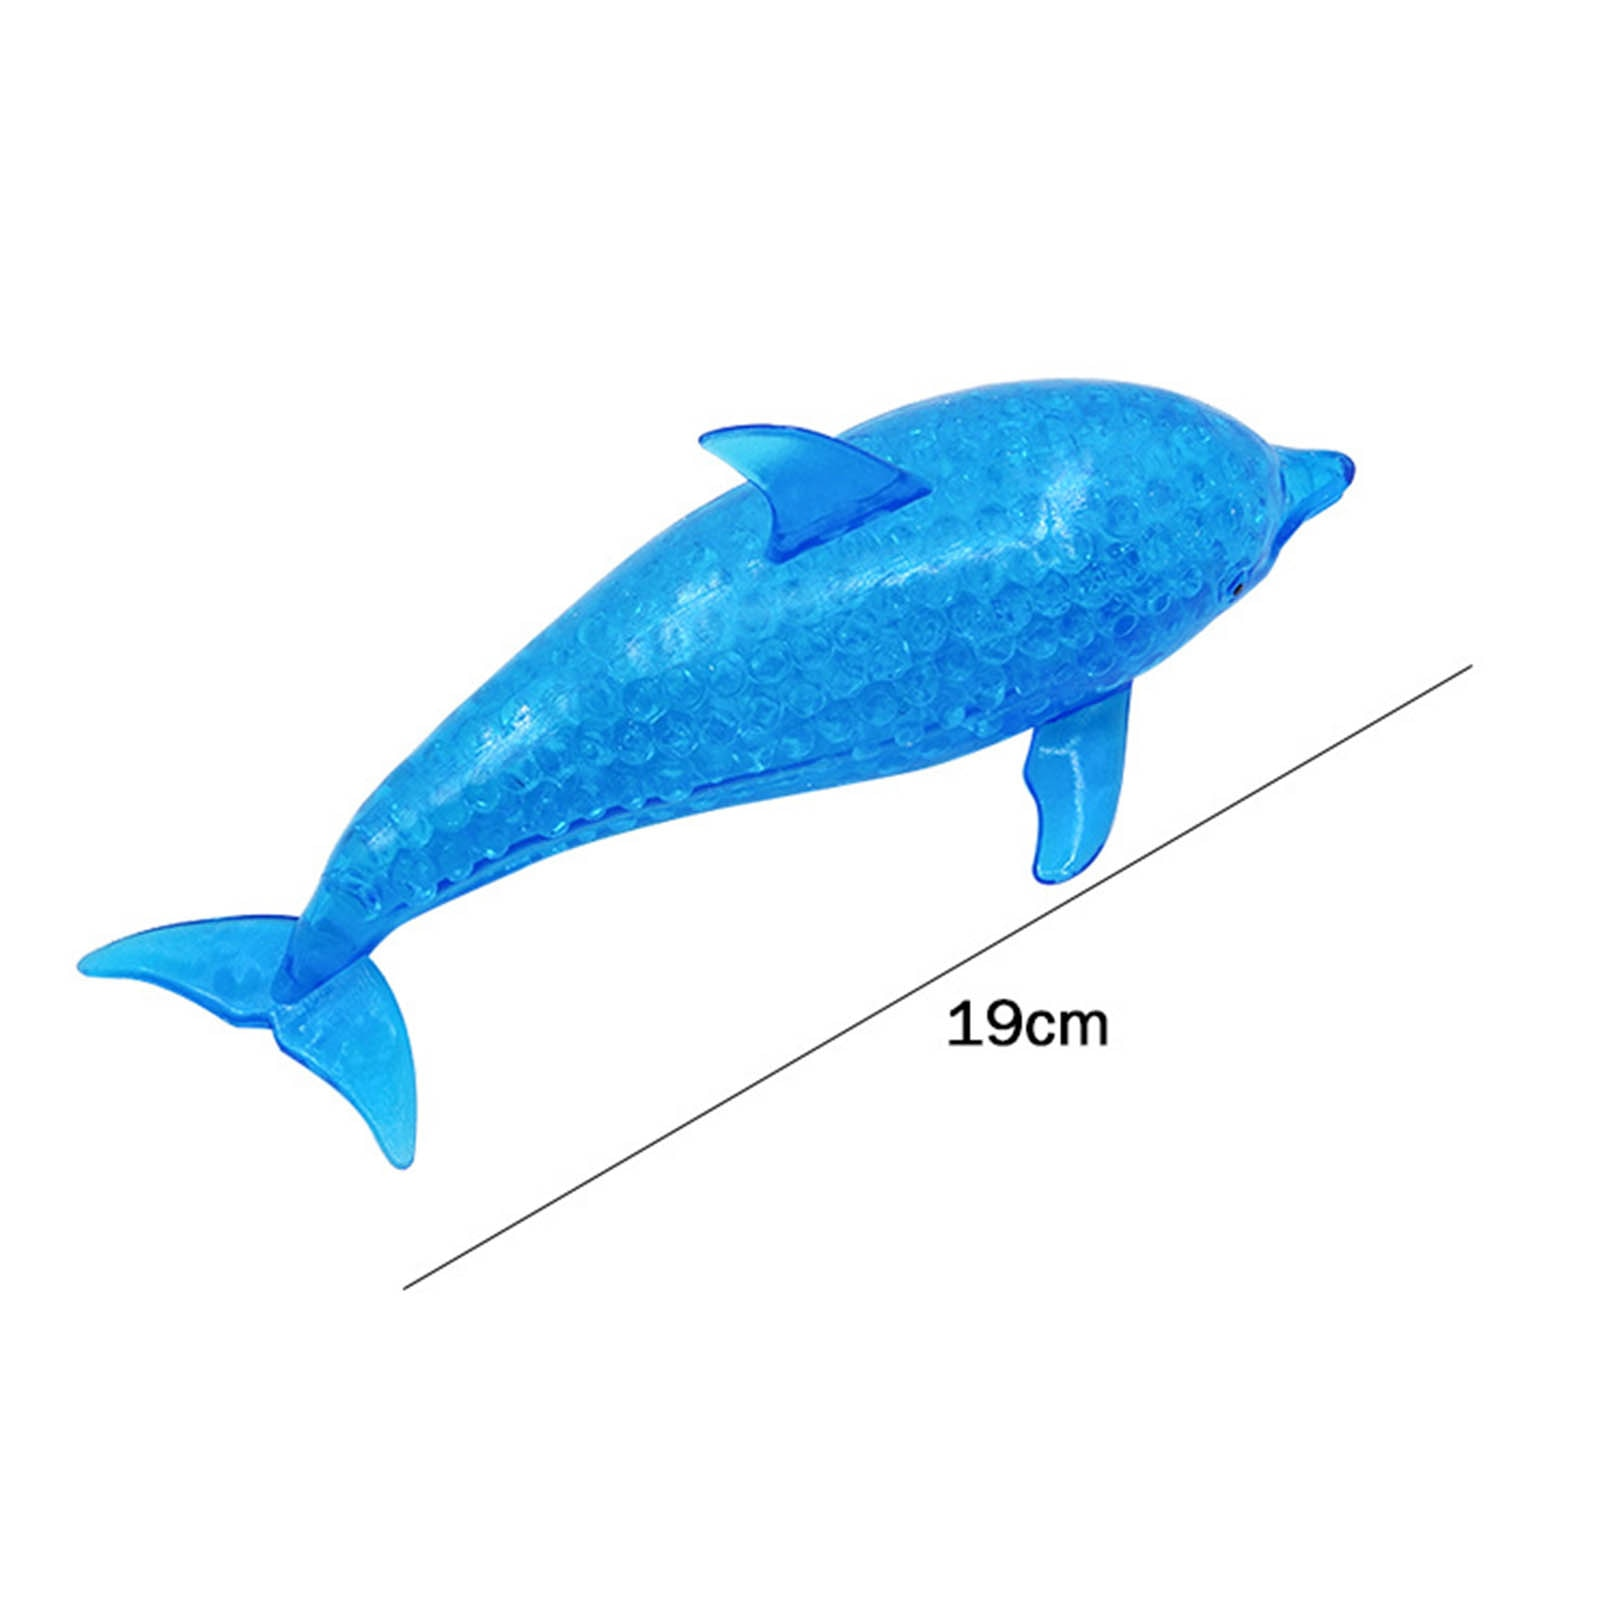 19cm Spongy Dolphin Squeeze Toys Bead Stress Ball Toy Soild Color Blue Squeezable For Adult Needs Stress Reliever Sensory Toys enlarge